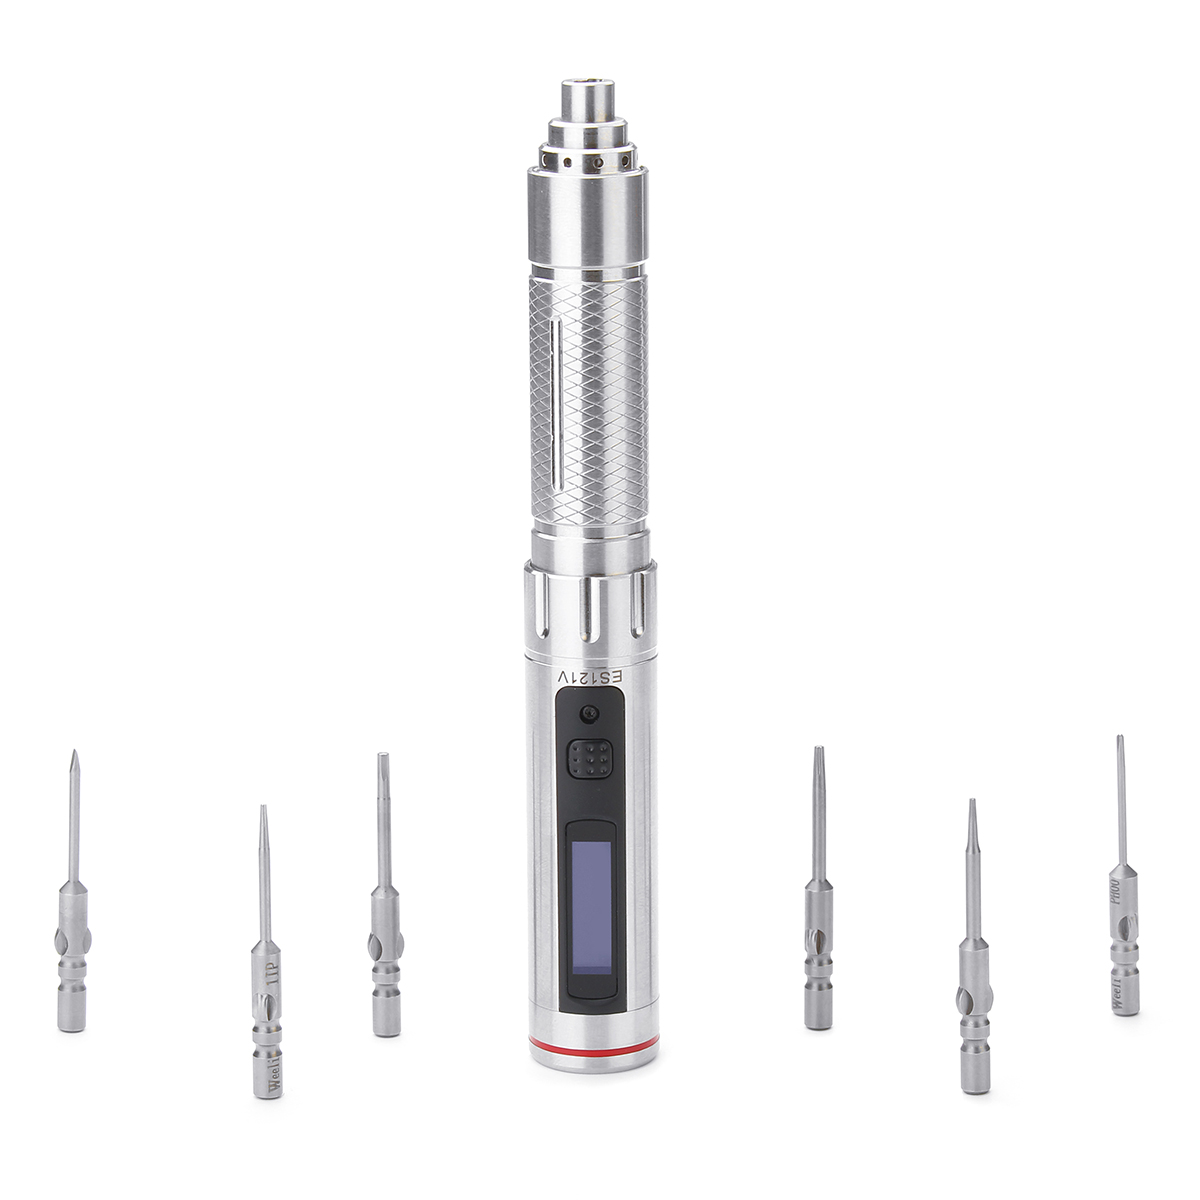 ES121V Mini Precision Cordless Electric Screwdriver Smart Motion Control Power Screwdriver Set Built-in STM32 Chip OLED UpgradeES121V Mini Precision Cordless Electric Screwdriver Smart Motion Control Power Screwdriver Set Built-in STM32 Chip OLED Upgrade